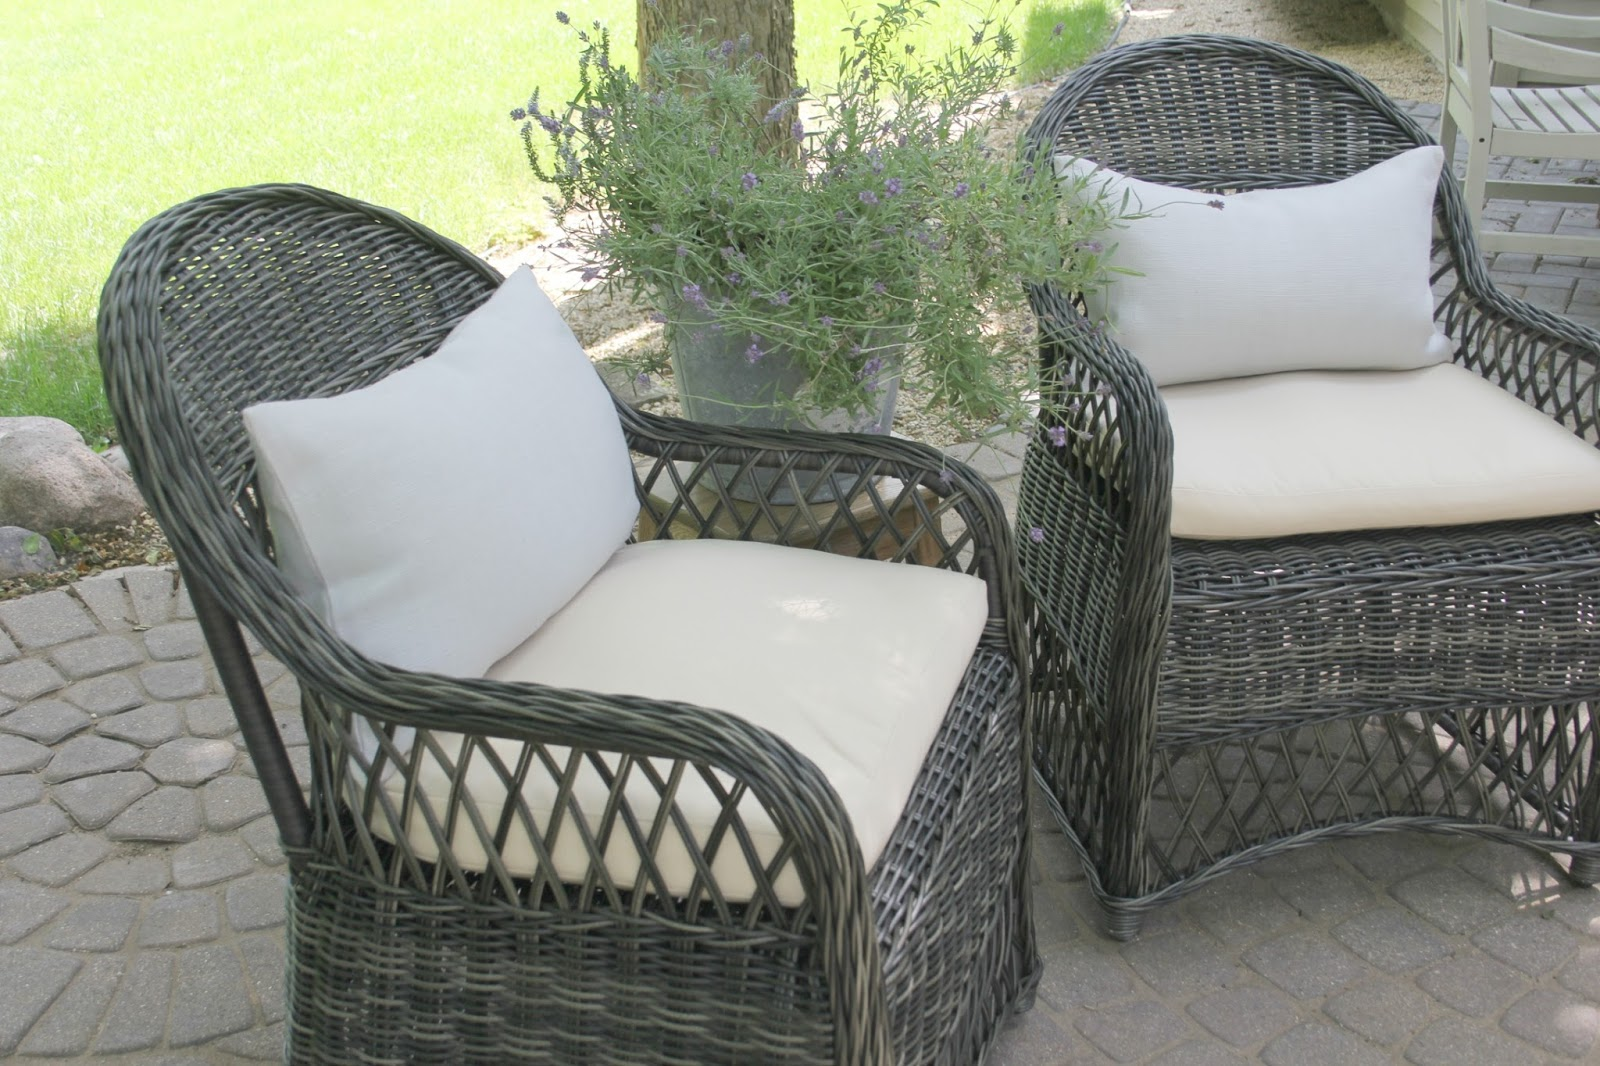 Gorgeous wicker Davies chairs (Decor Market) on patio - Hello Lovely Studio